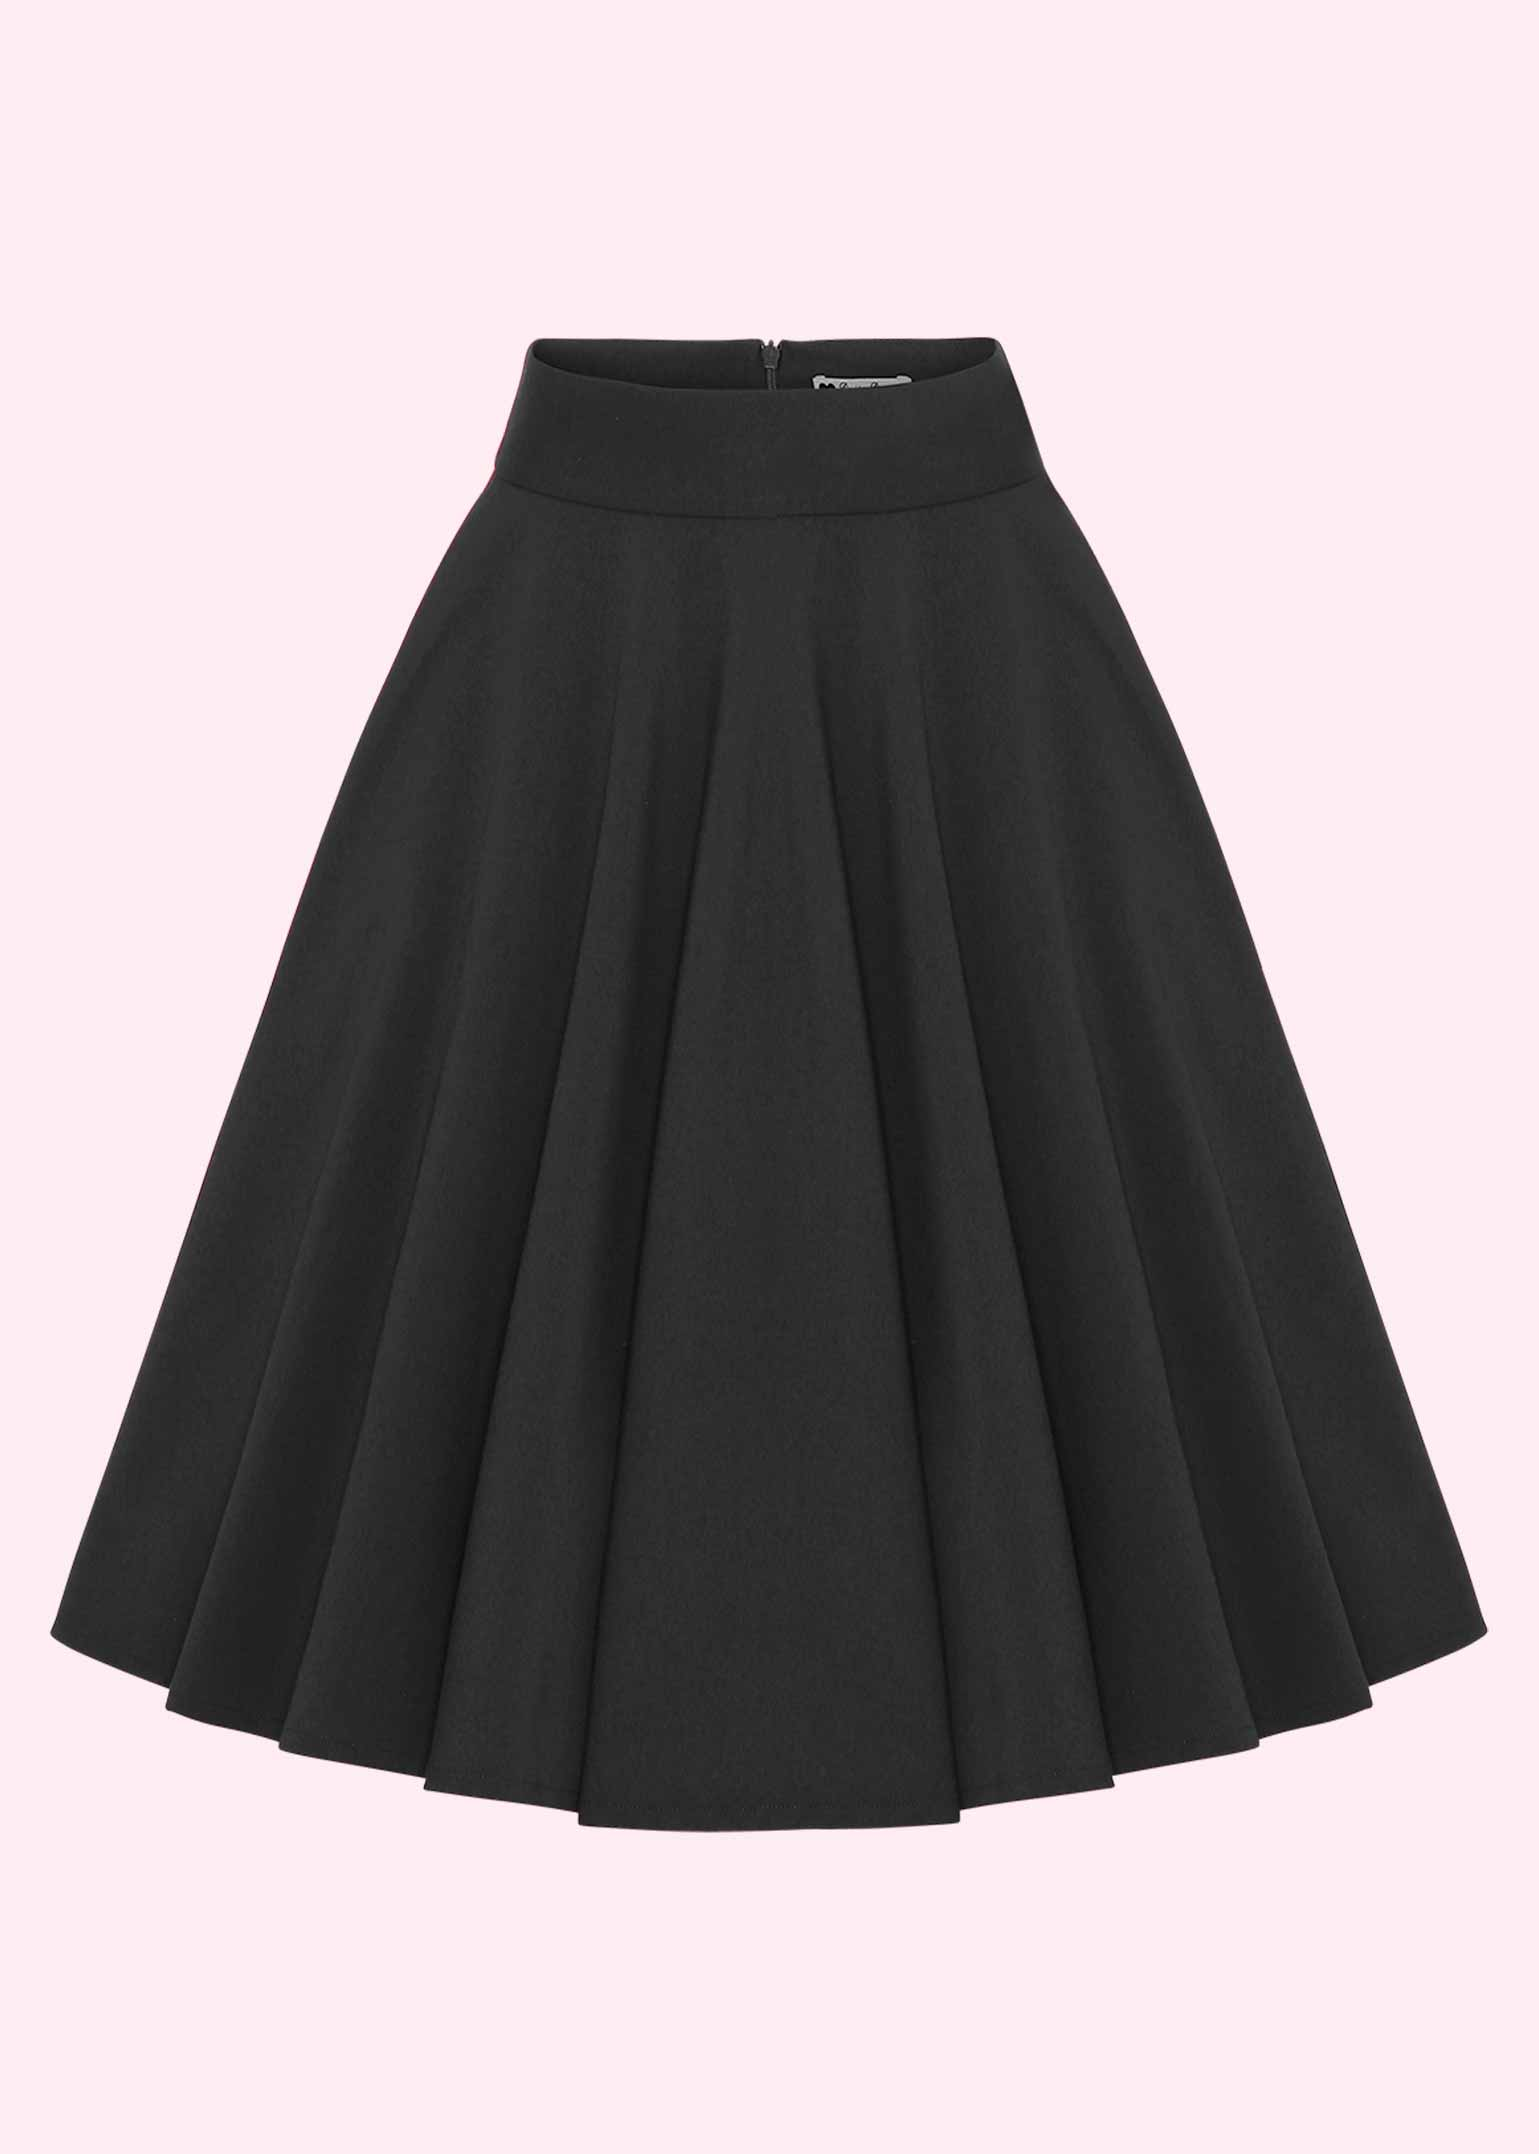 Classic black swing skirt in 50s style from Daisy Dapper